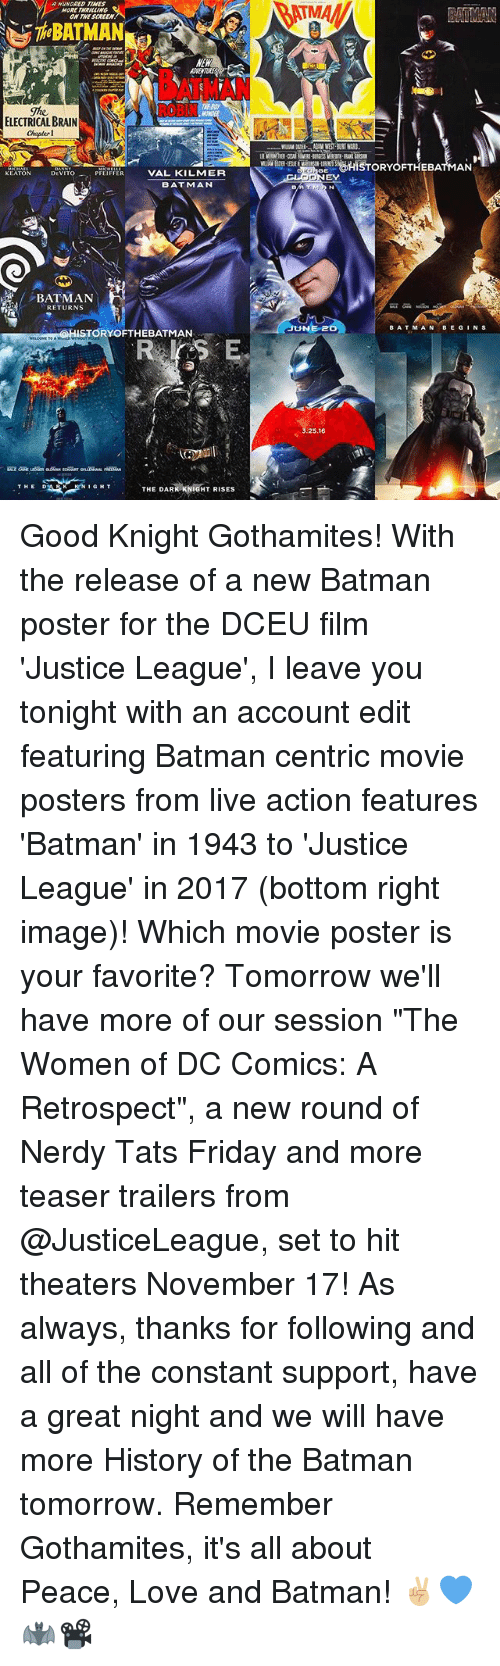 """bat man: MORE  NEW  ELECTRICAL BRAIN  Chapter 1  DEVITO  PFEIFFER  VAL KILMER  KEATON  BATMAN  RETURNS  STORY OFTHEBATMAN  RK KNIGHT RISES  THE DAR  EAMAN  g@HISTORY OFTHEBAT  AN  ATM N  BAT MAN  BE G  NS  NEr  25,16 Good Knight Gothamites! With the release of a new Batman poster for the DCEU film 'Justice League', I leave you tonight with an account edit featuring Batman centric movie posters from live action features 'Batman' in 1943 to 'Justice League' in 2017 (bottom right image)! Which movie poster is your favorite? Tomorrow we'll have more of our session """"The Women of DC Comics: A Retrospect"""", a new round of Nerdy Tats Friday and more teaser trailers from @JusticeLeague, set to hit theaters November 17! As always, thanks for following and all of the constant support, have a great night and we will have more History of the Batman tomorrow. Remember Gothamites, it's all about Peace, Love and Batman! ✌🏼💙🦇📽"""